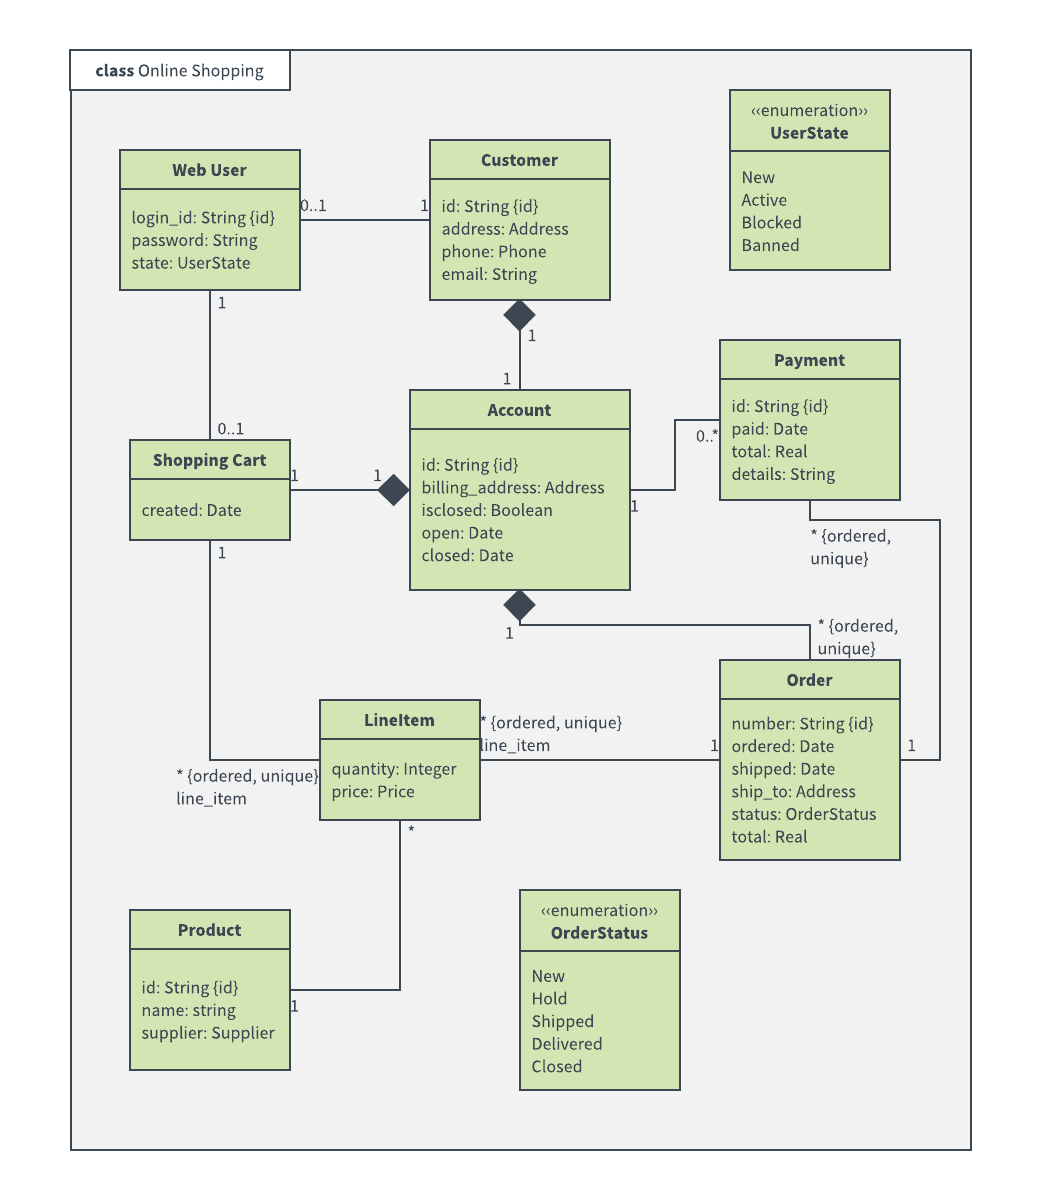 Uml diagram templates and examples lucidchart blog online shopping class diagram example uml ccuart Images